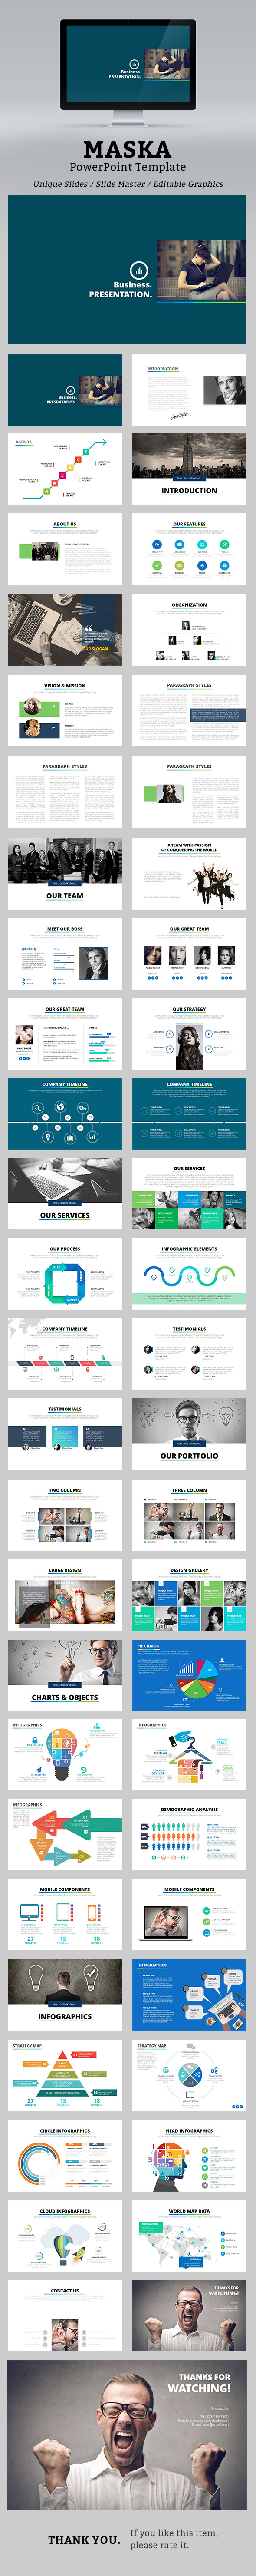 Maska PowerPoint Template